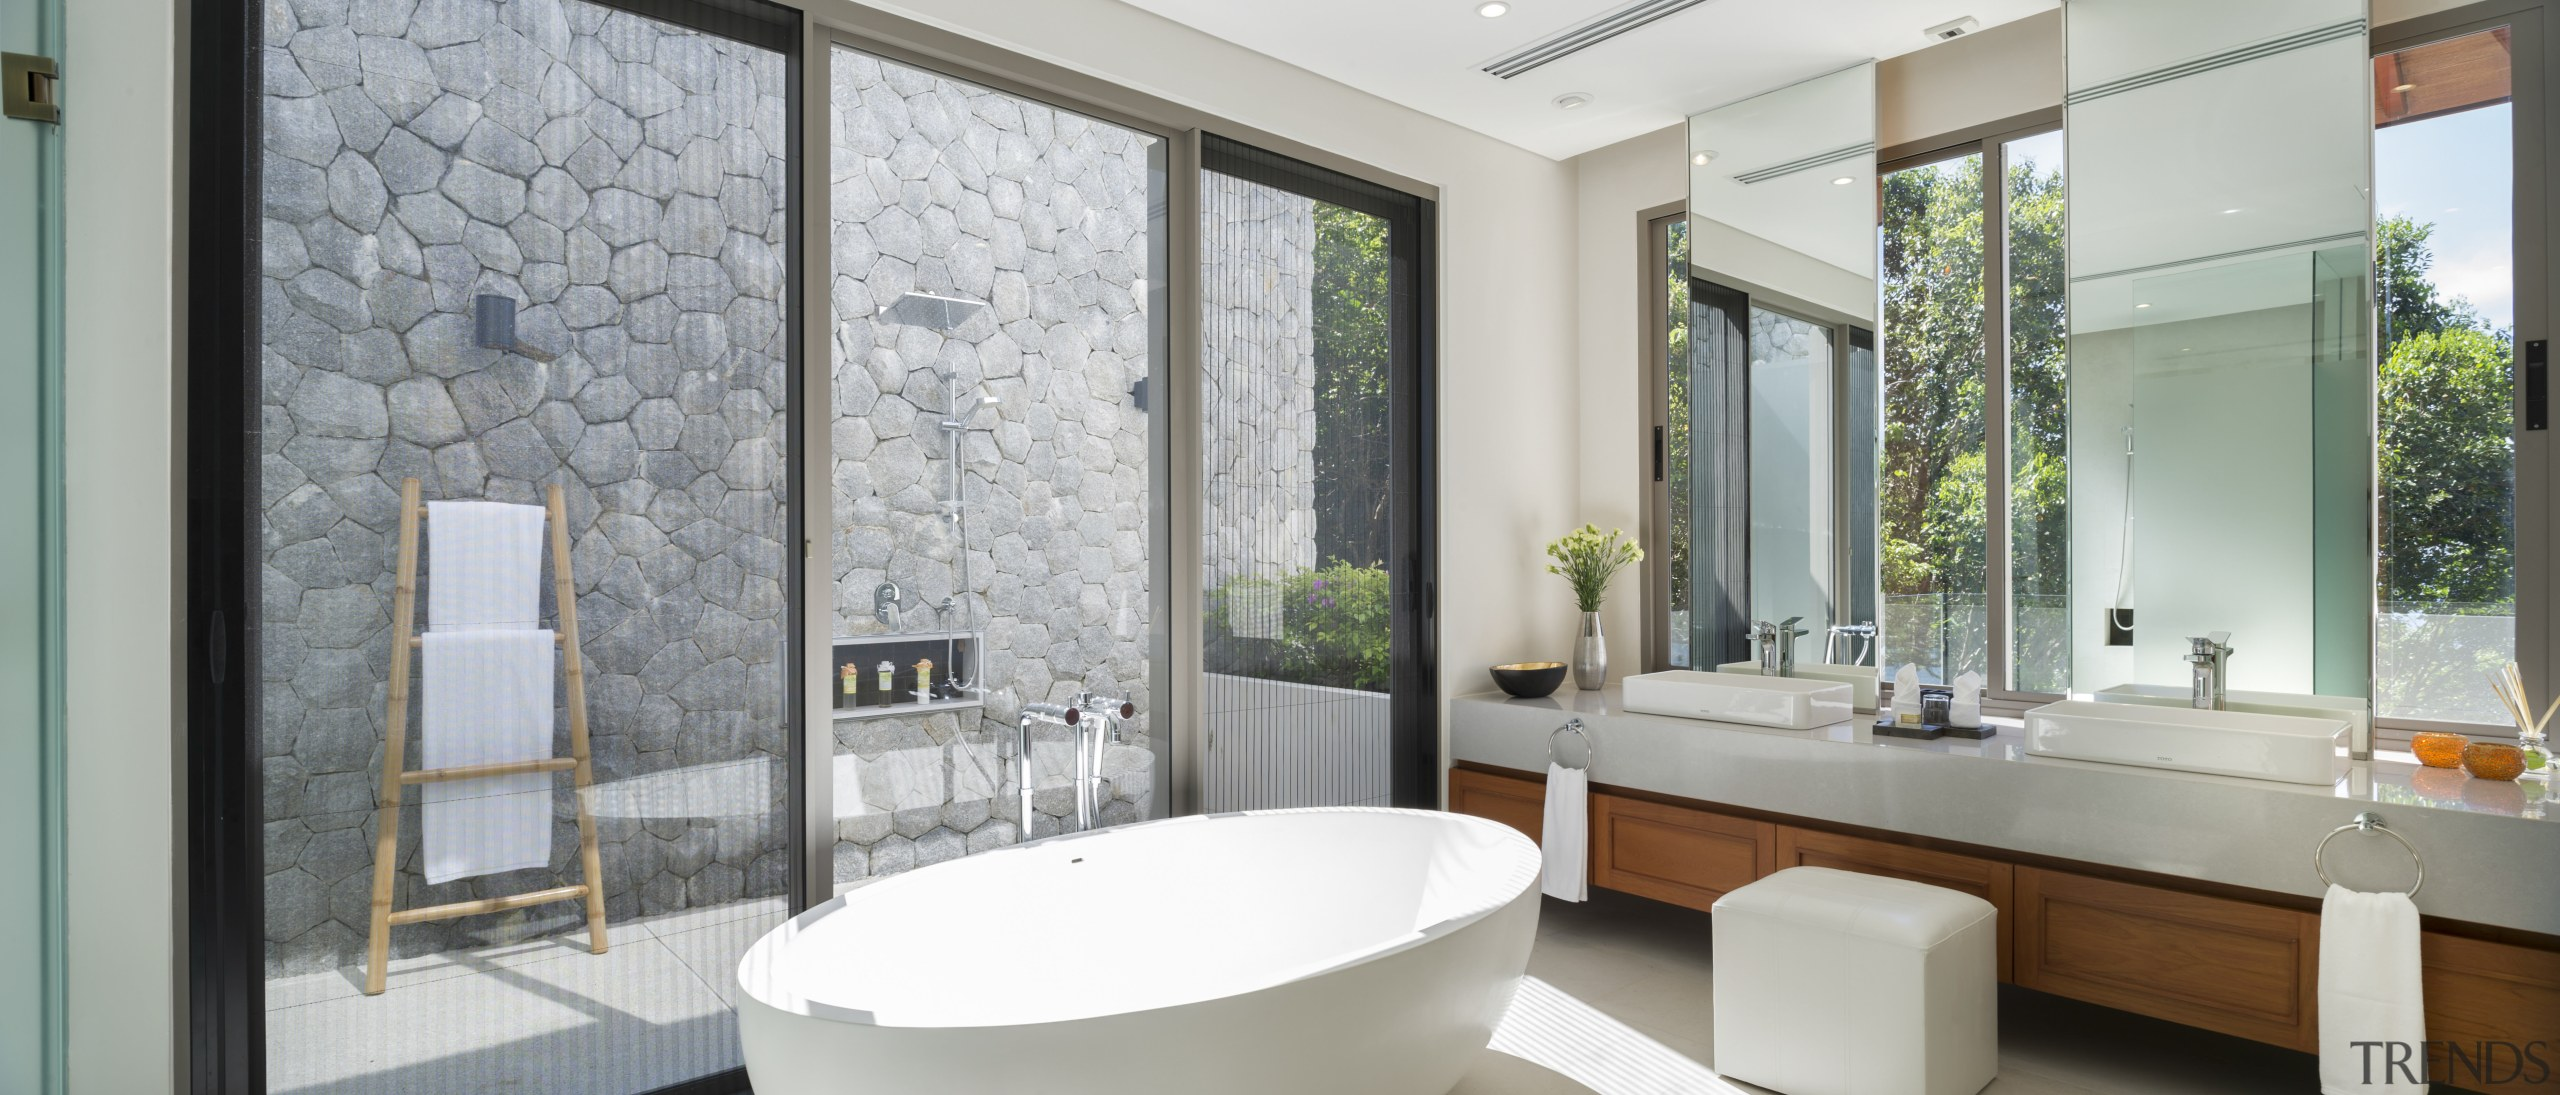 This master bathroom gives the option of showering bathroom, home, interior design, window, gray